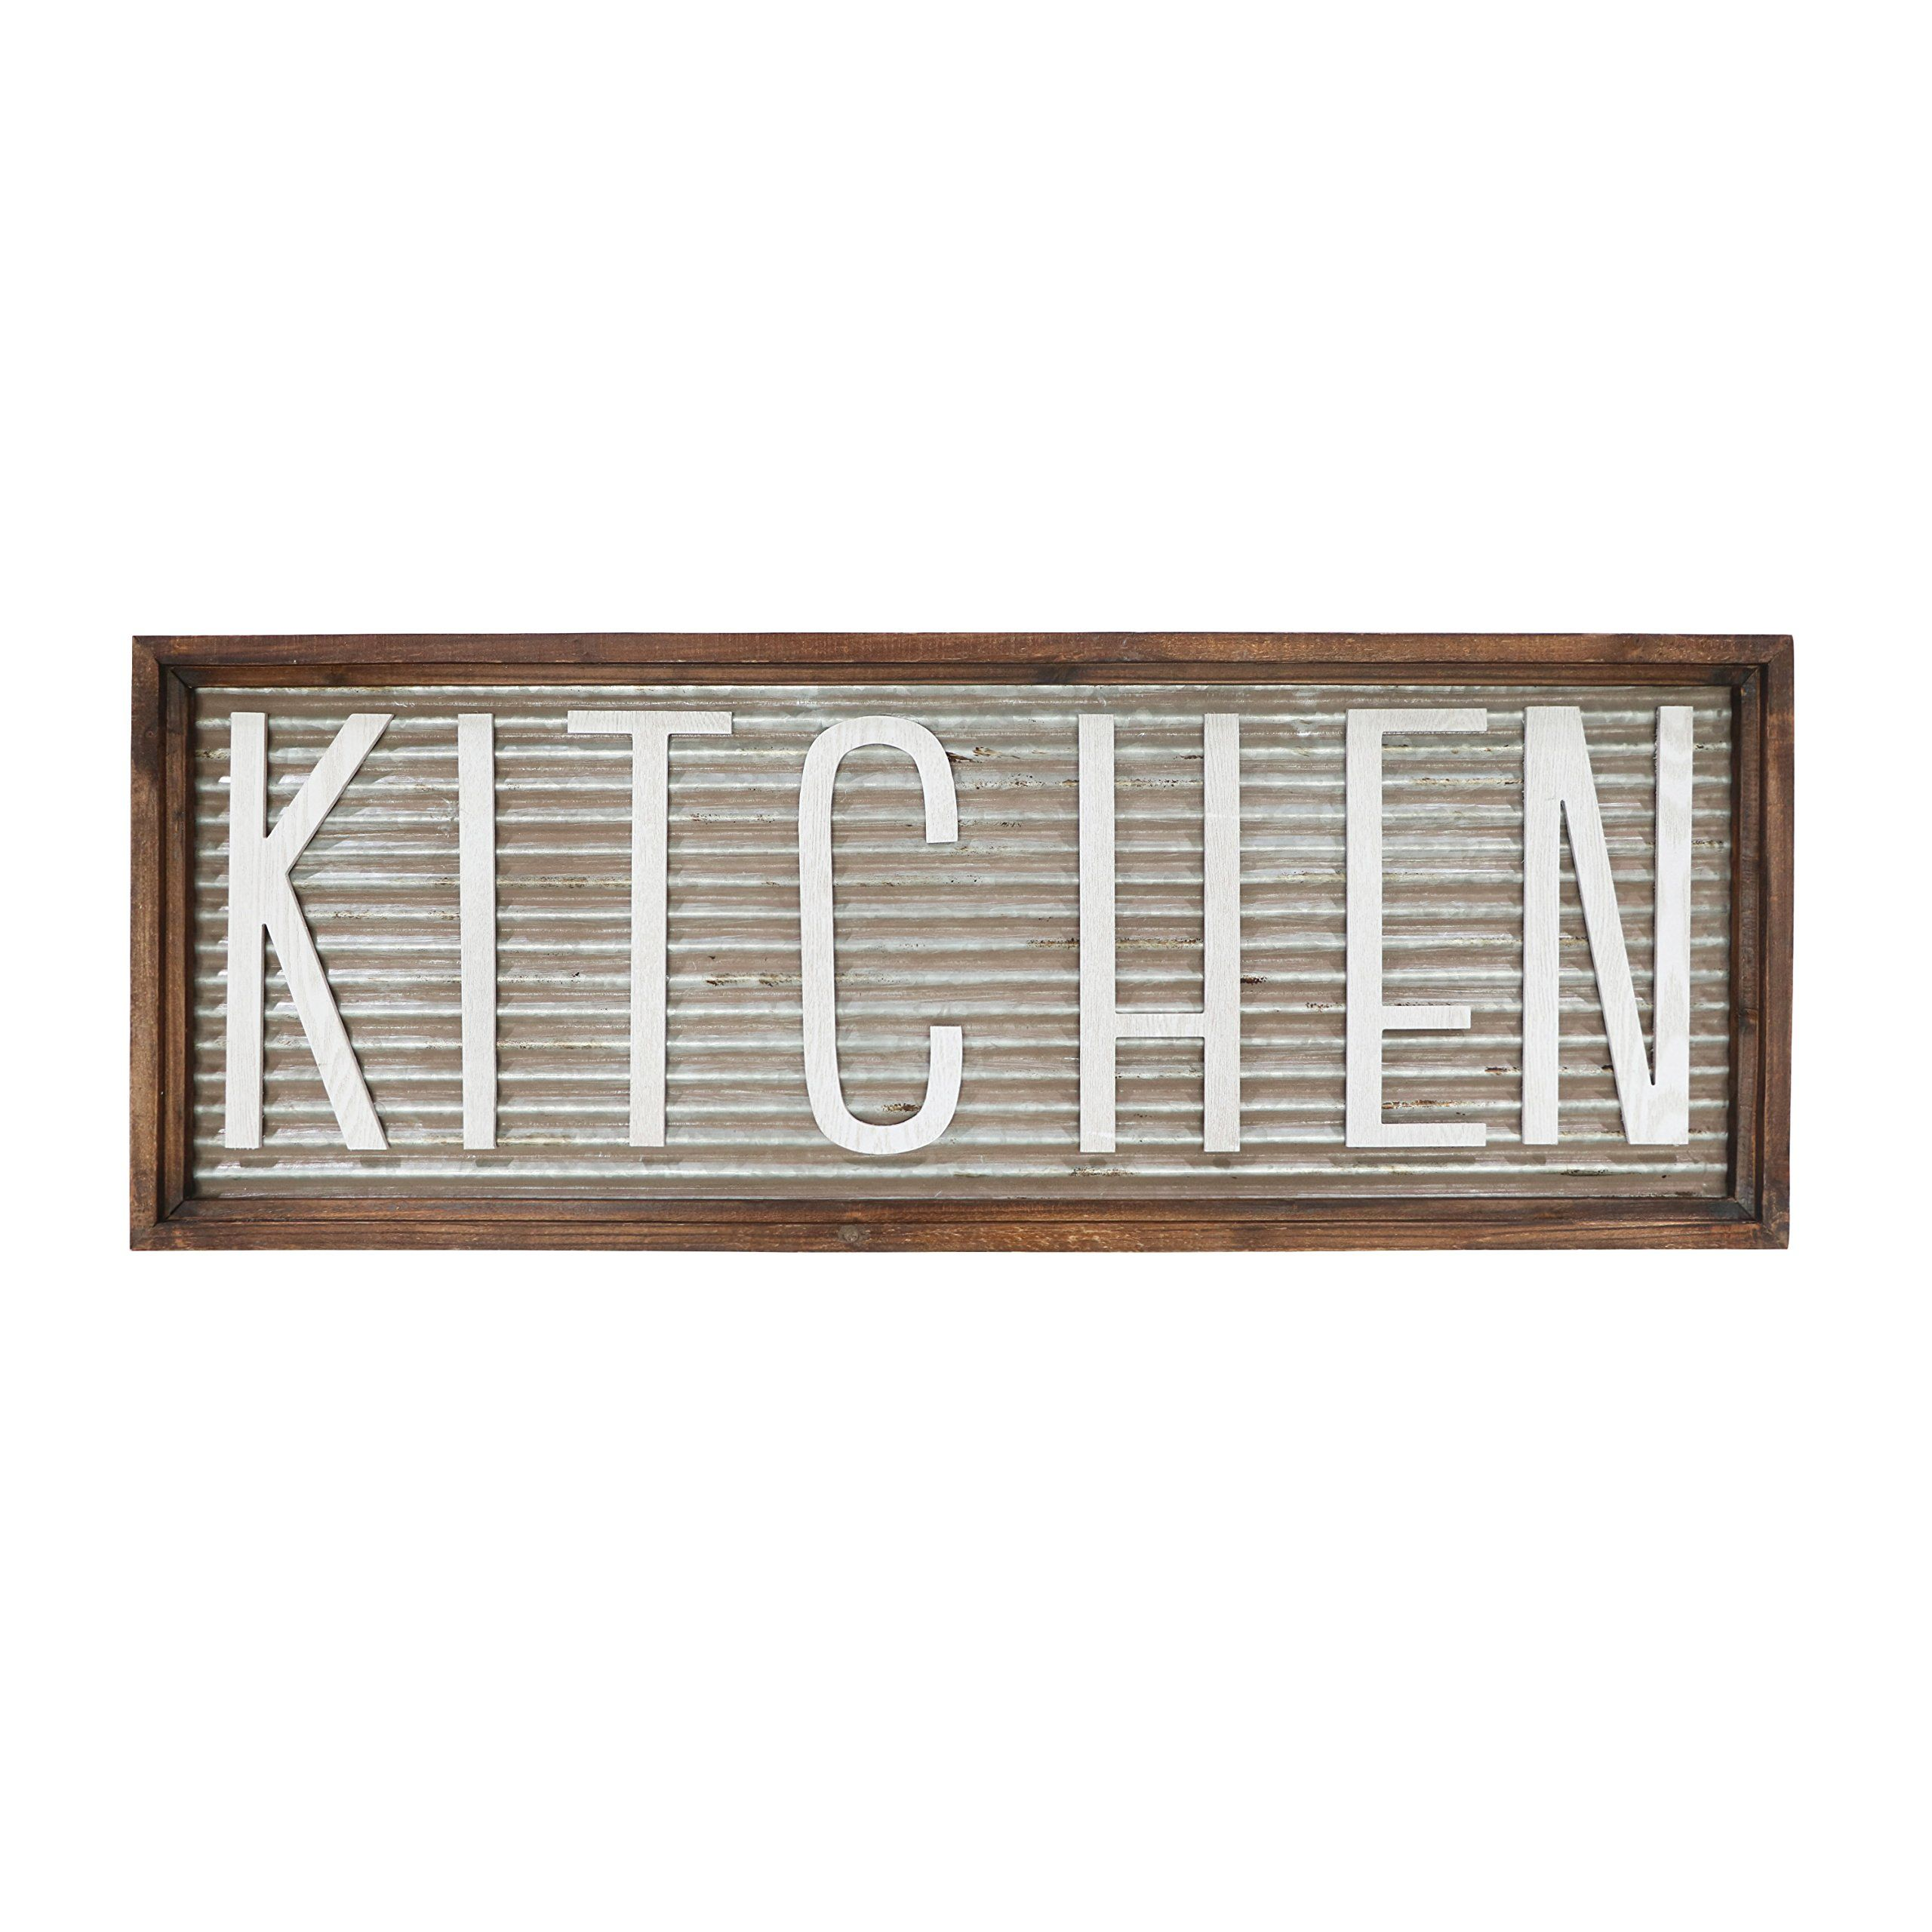 Barnyard Designs Kitchen Wall Decor Sign Rustic Vintage Farmhouse Country Decoration For Kitc Kitchen Wall Decor Kitchen Decor Wall Art Country Farmhouse Decor